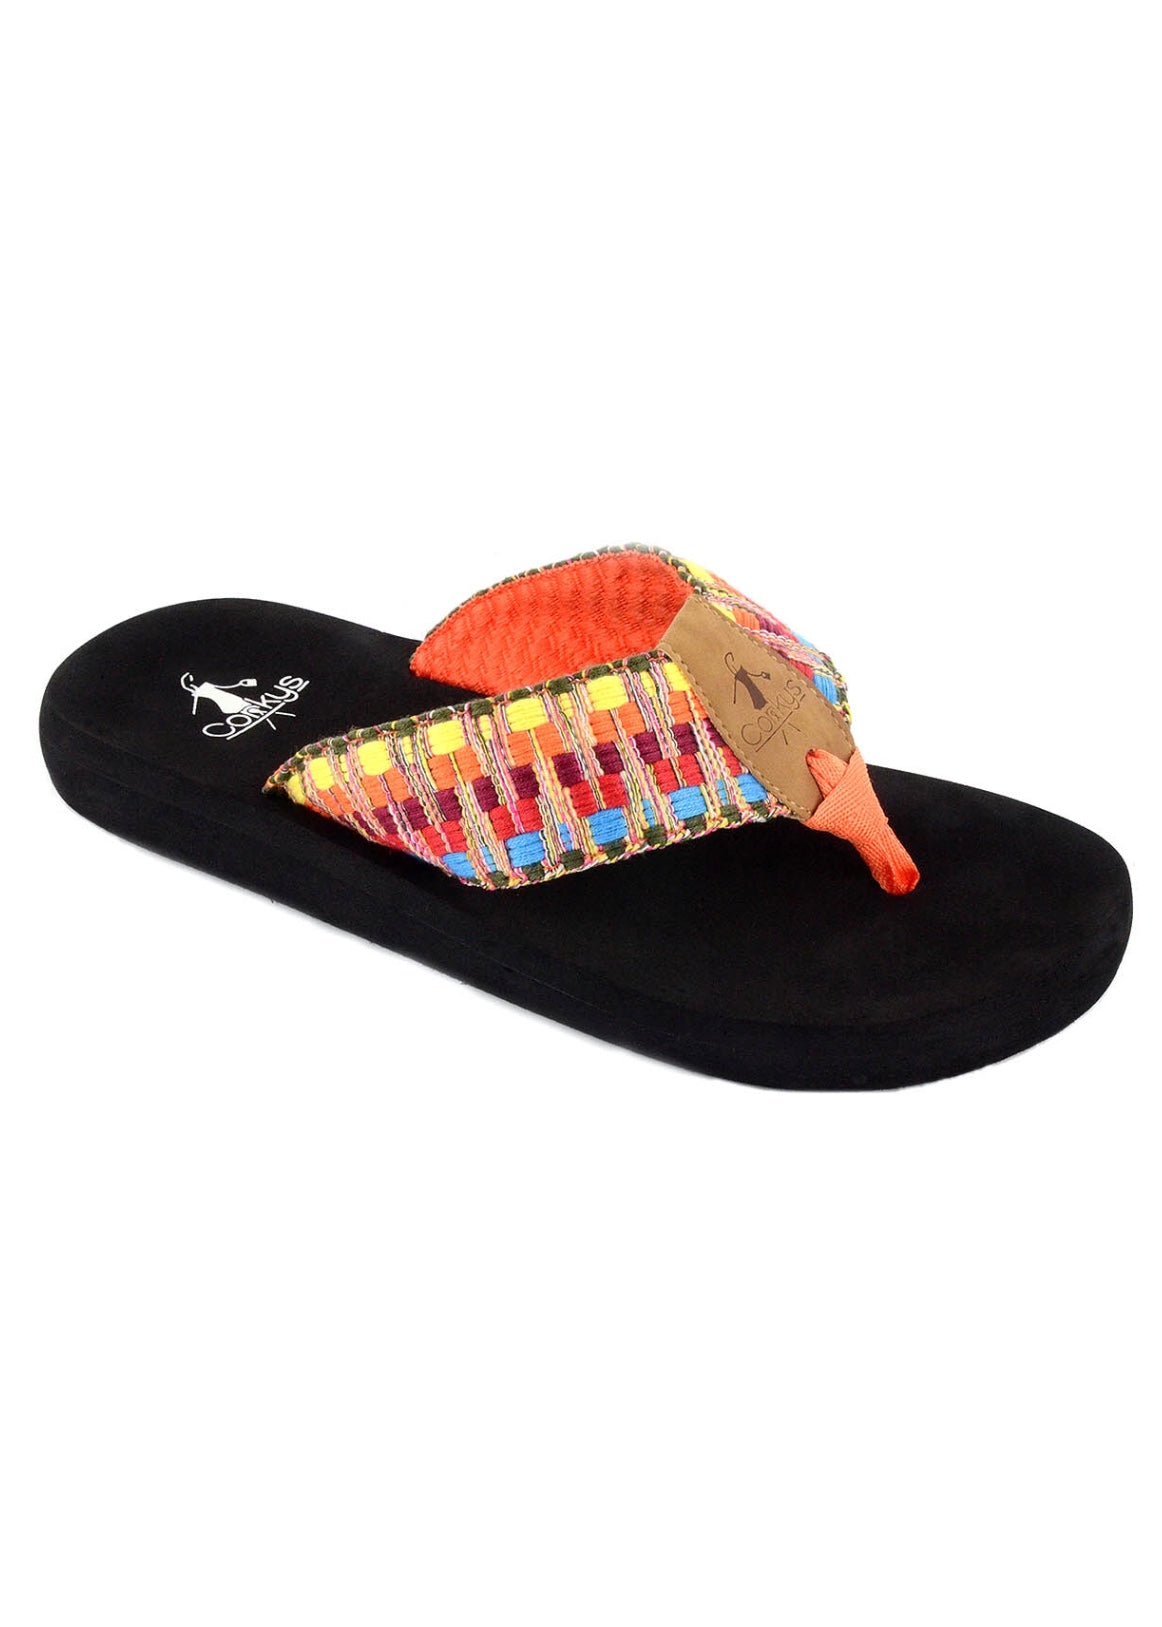 Bonnie Flip Flops by Corkys-BRIGHT MULTI